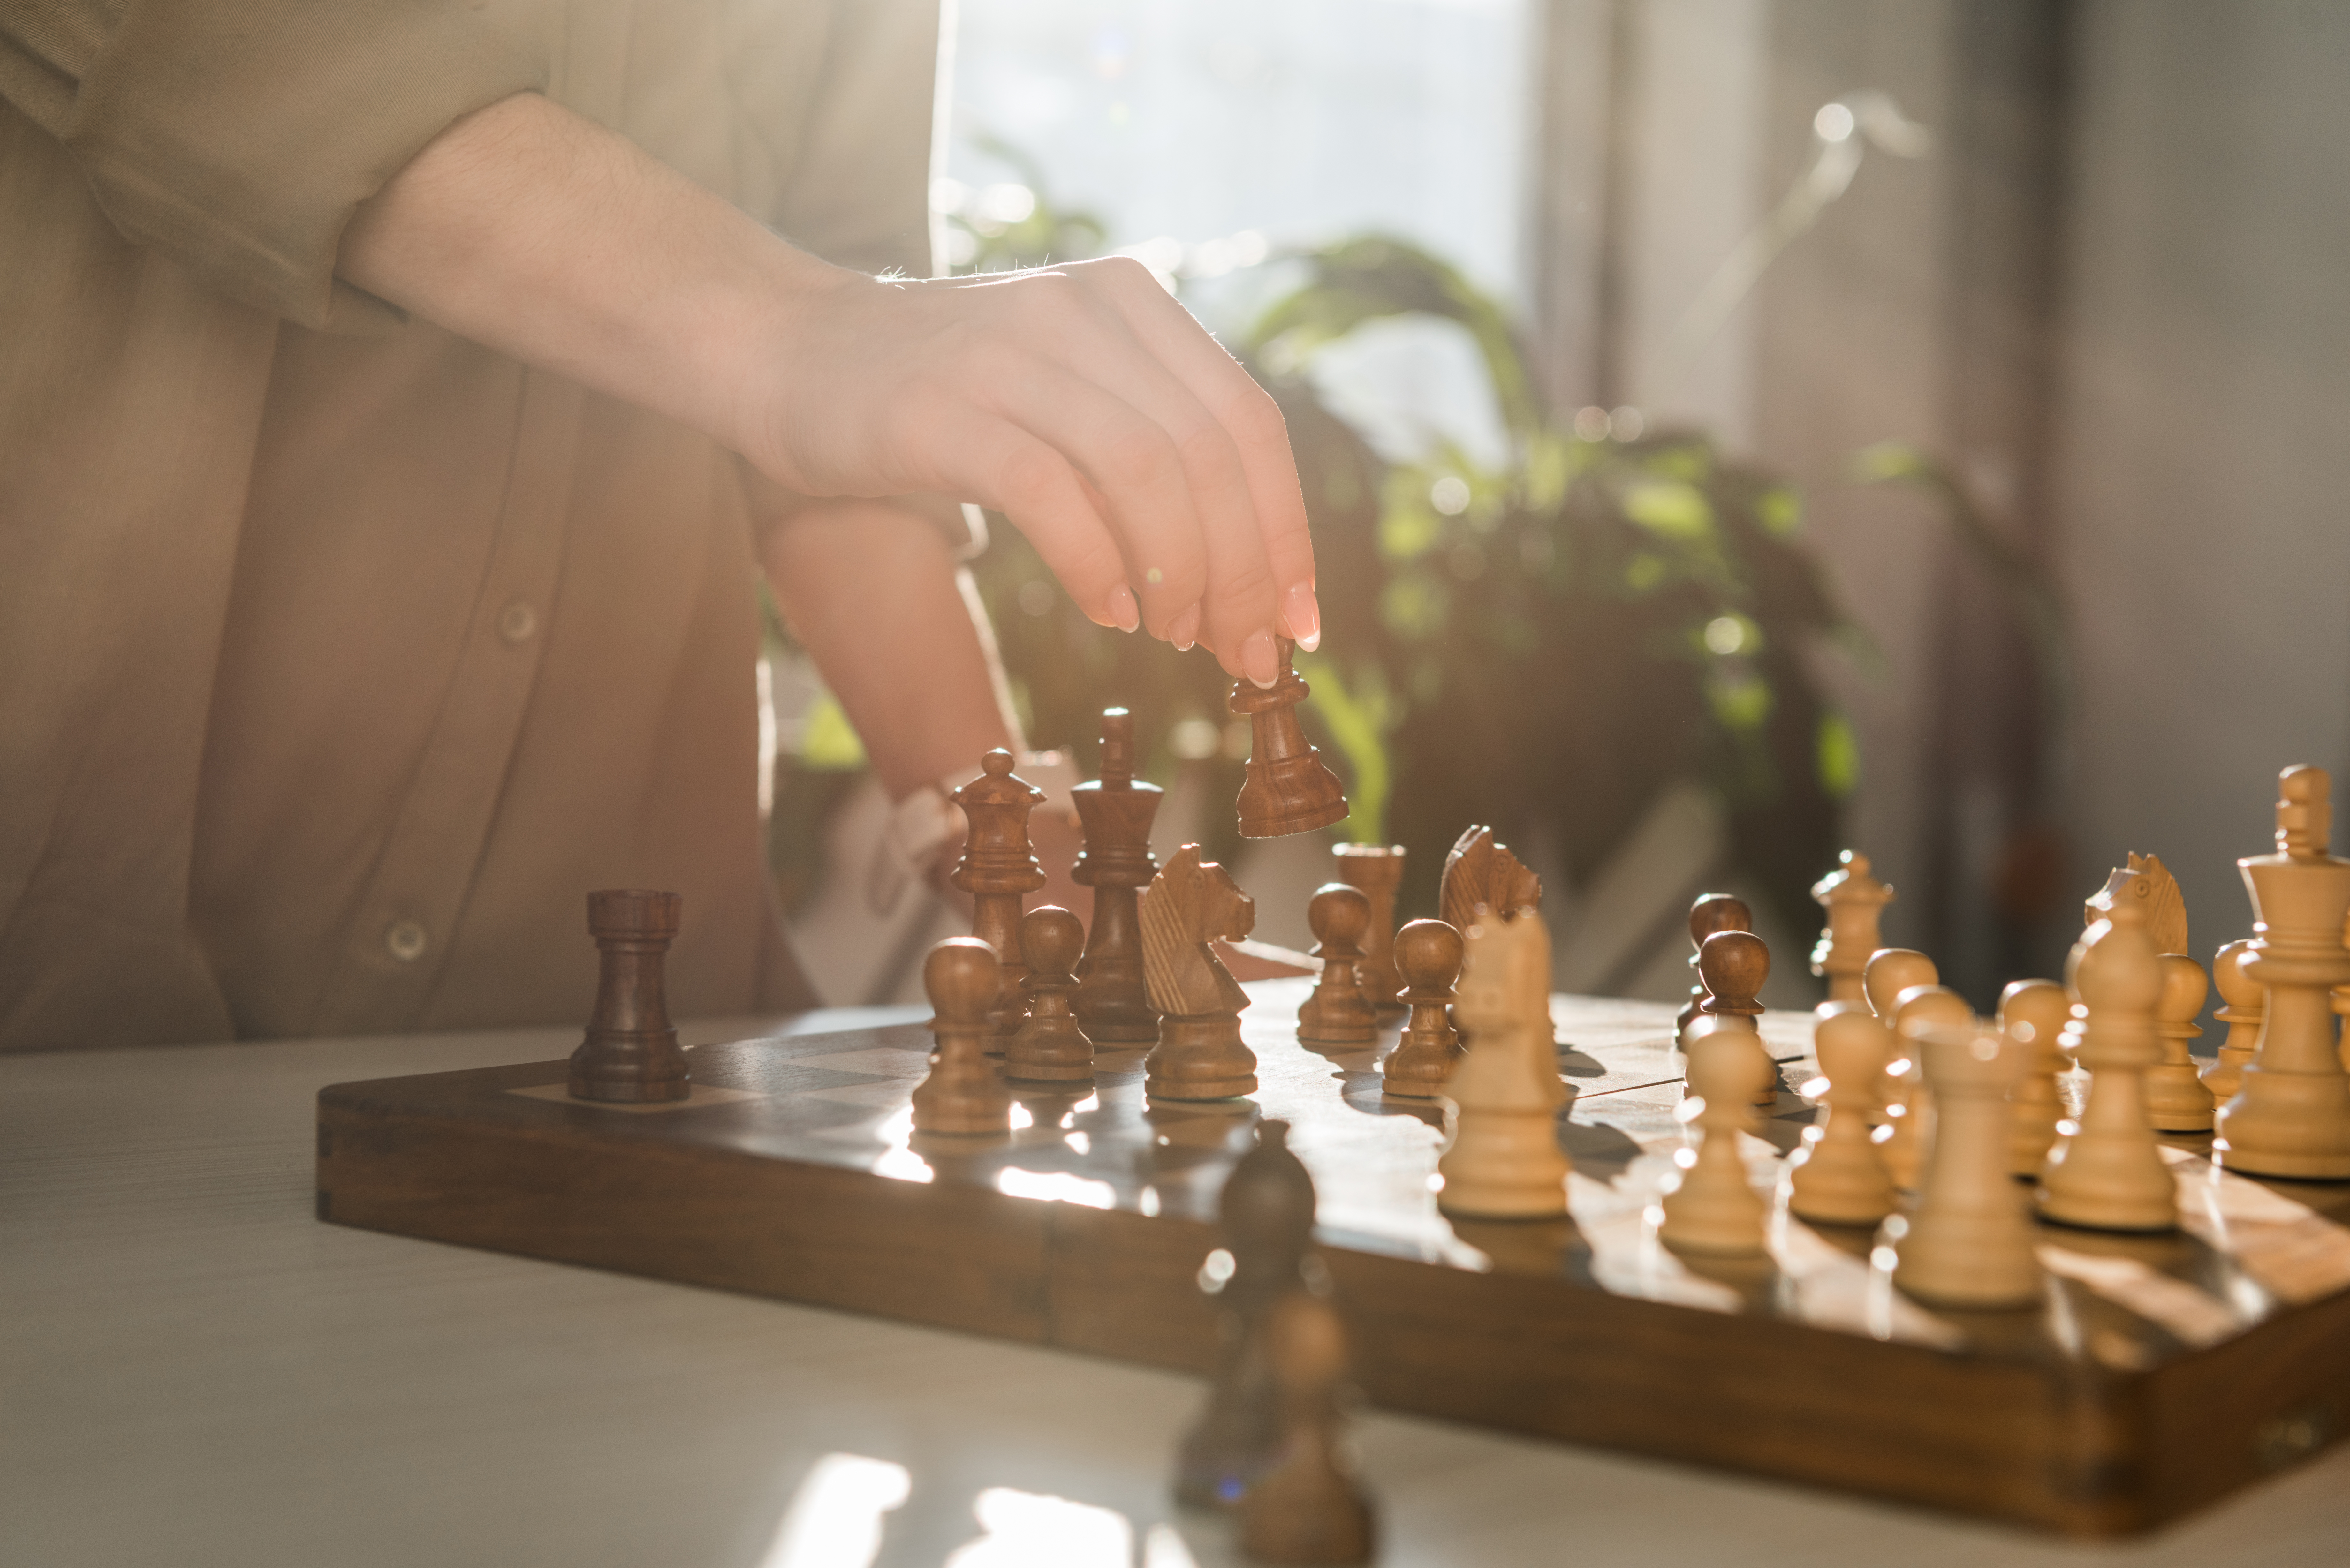 Cropped shot of woman making move while playing chess